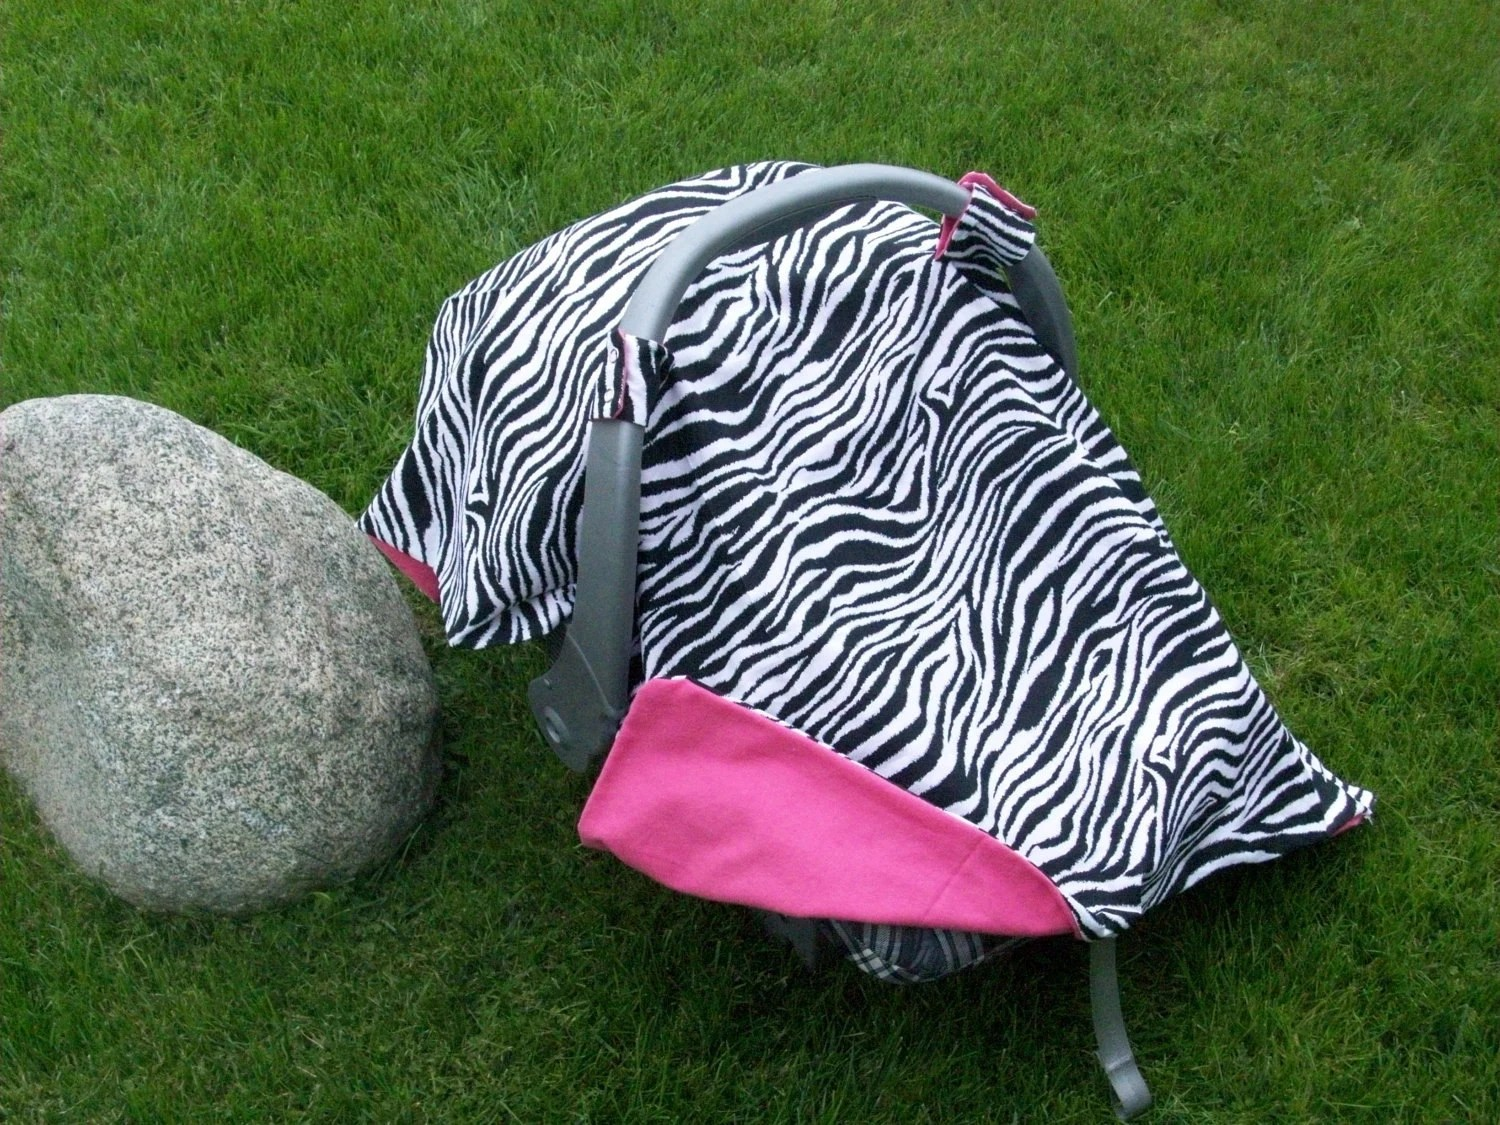 Handmade Zebra Infant Car Seat Cover